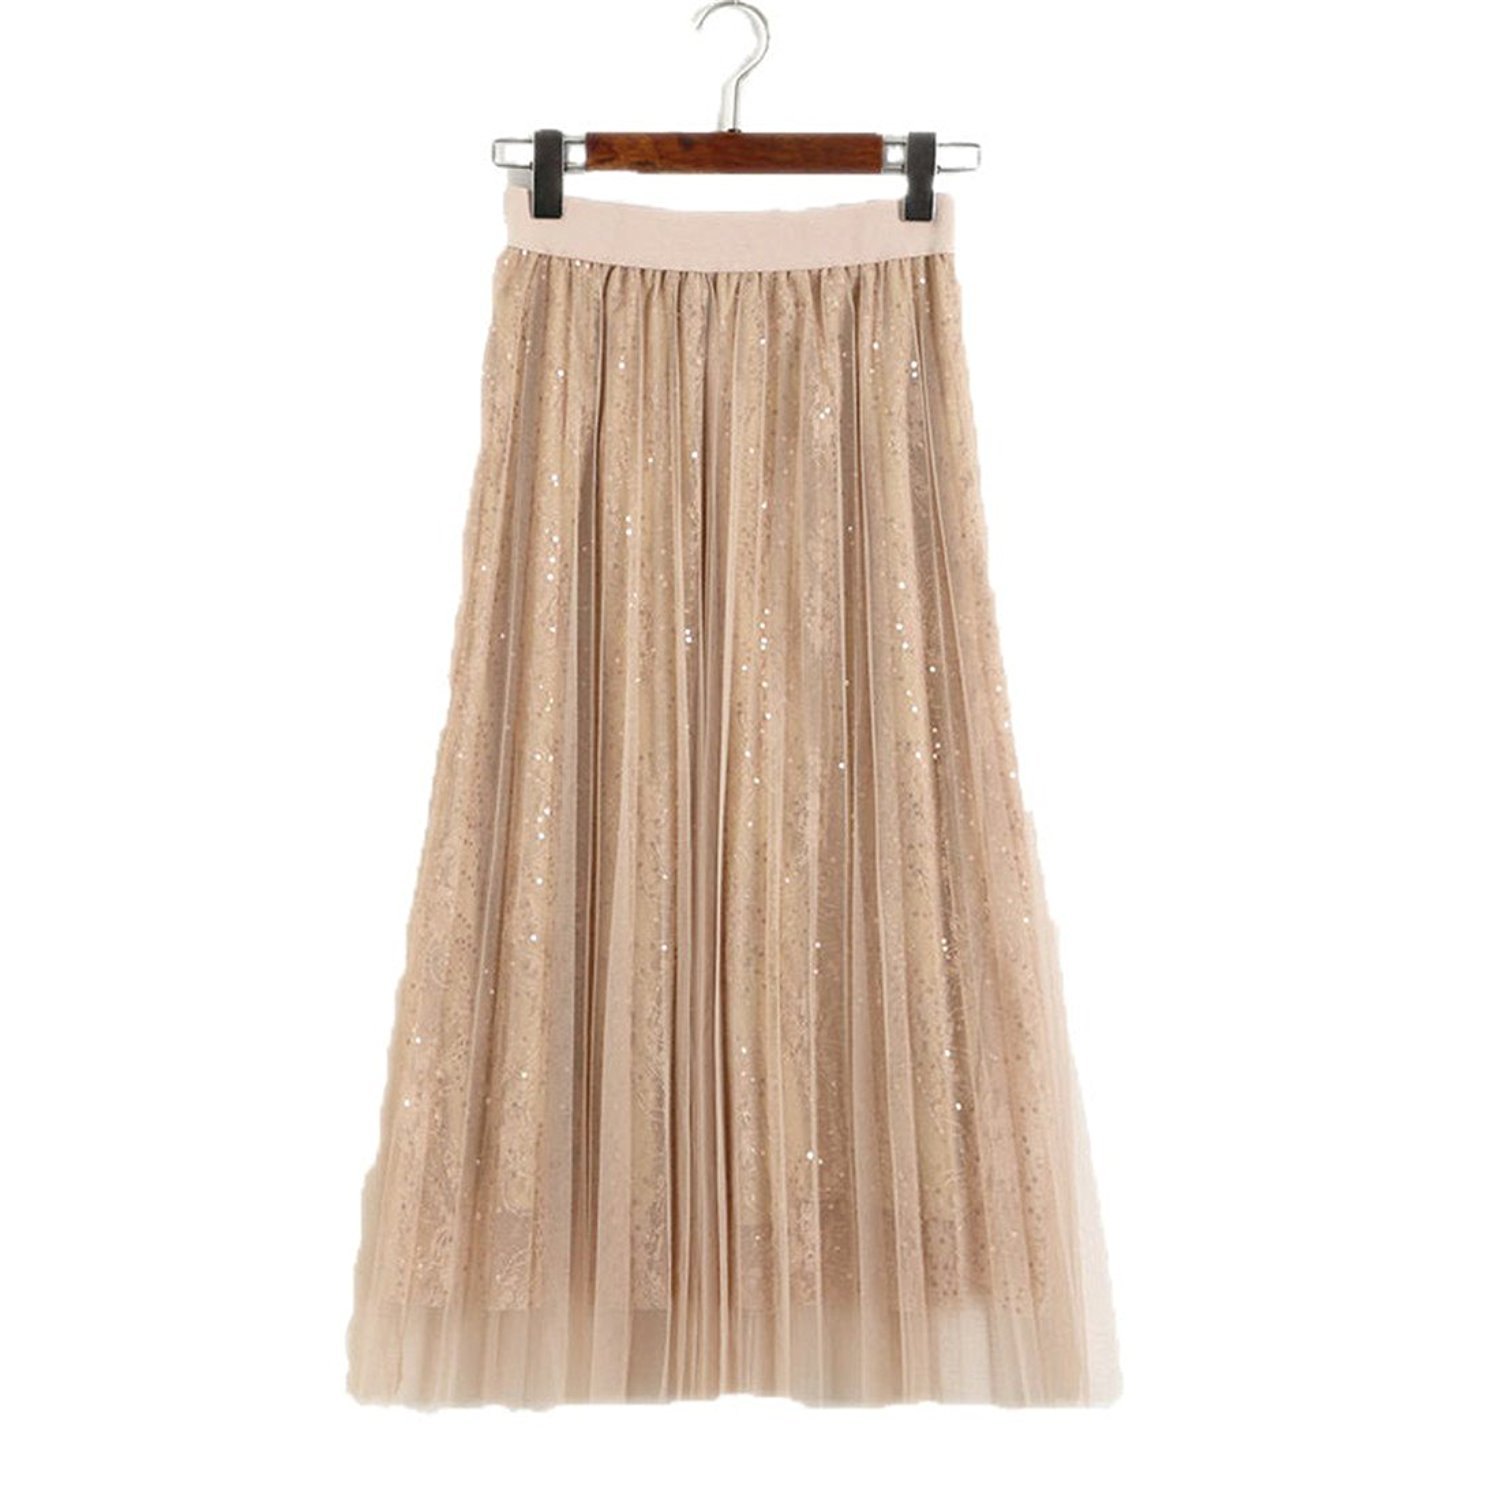 d69be36af Get Quotations · BRLLY Layered Mesh Long Pleated Skirt High Waist Stretch A  Line Sweet Pleated Pleated